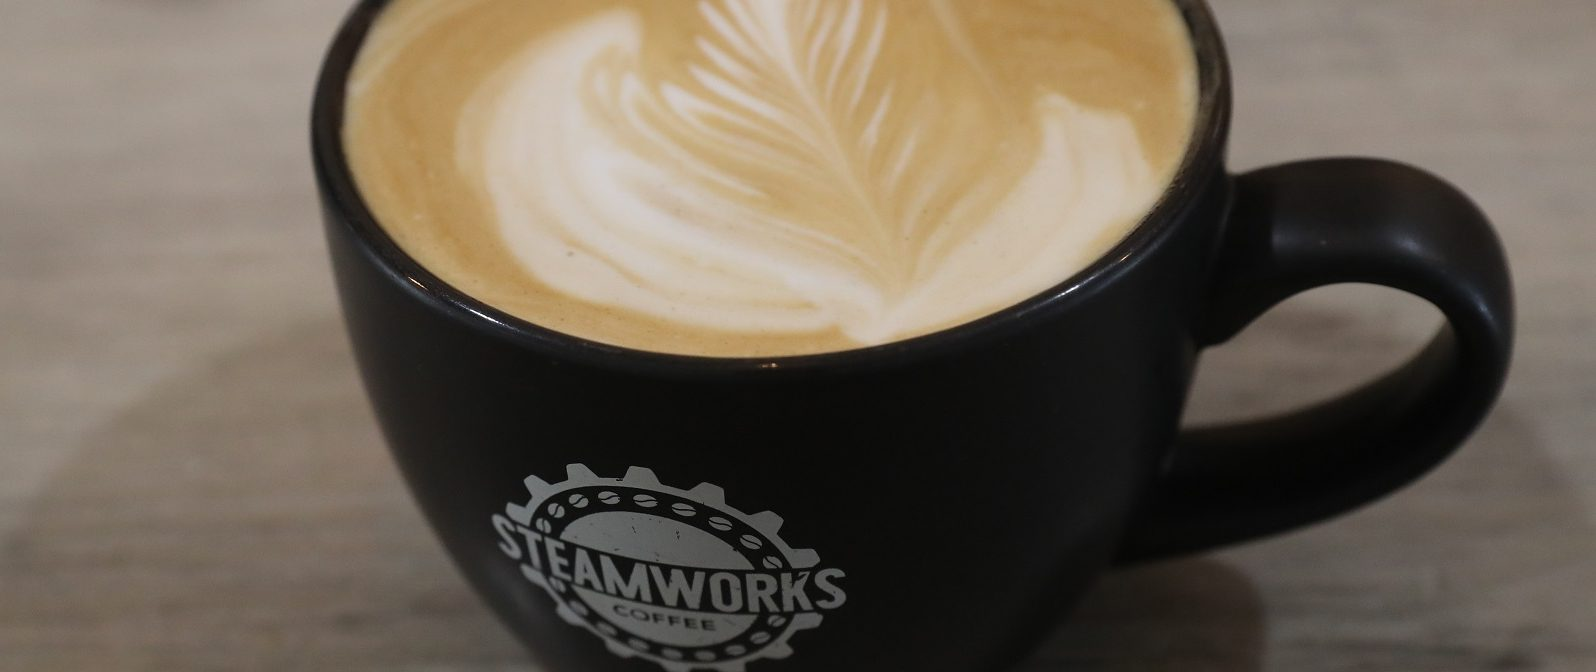 A latte from Steamworks Coffee is available as a sweeter option. (John Hickey/Buffalo News file photo)